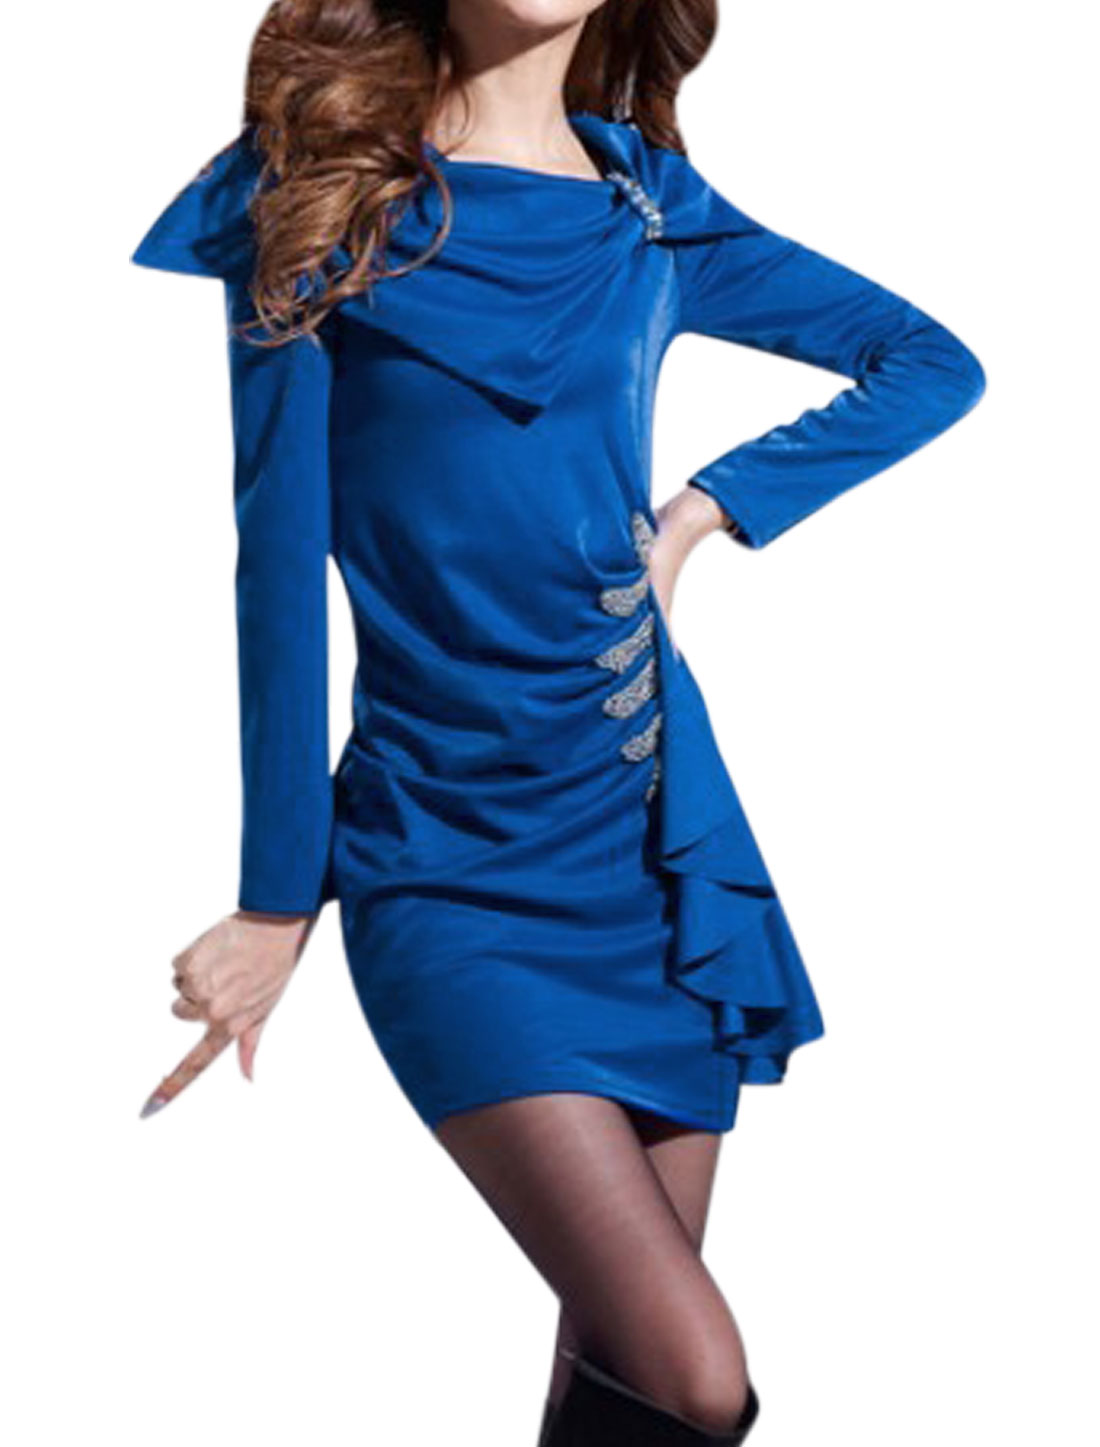 Ruched Design Slipover Long Sleeves Chic Blue Sheath Dress for Lady M